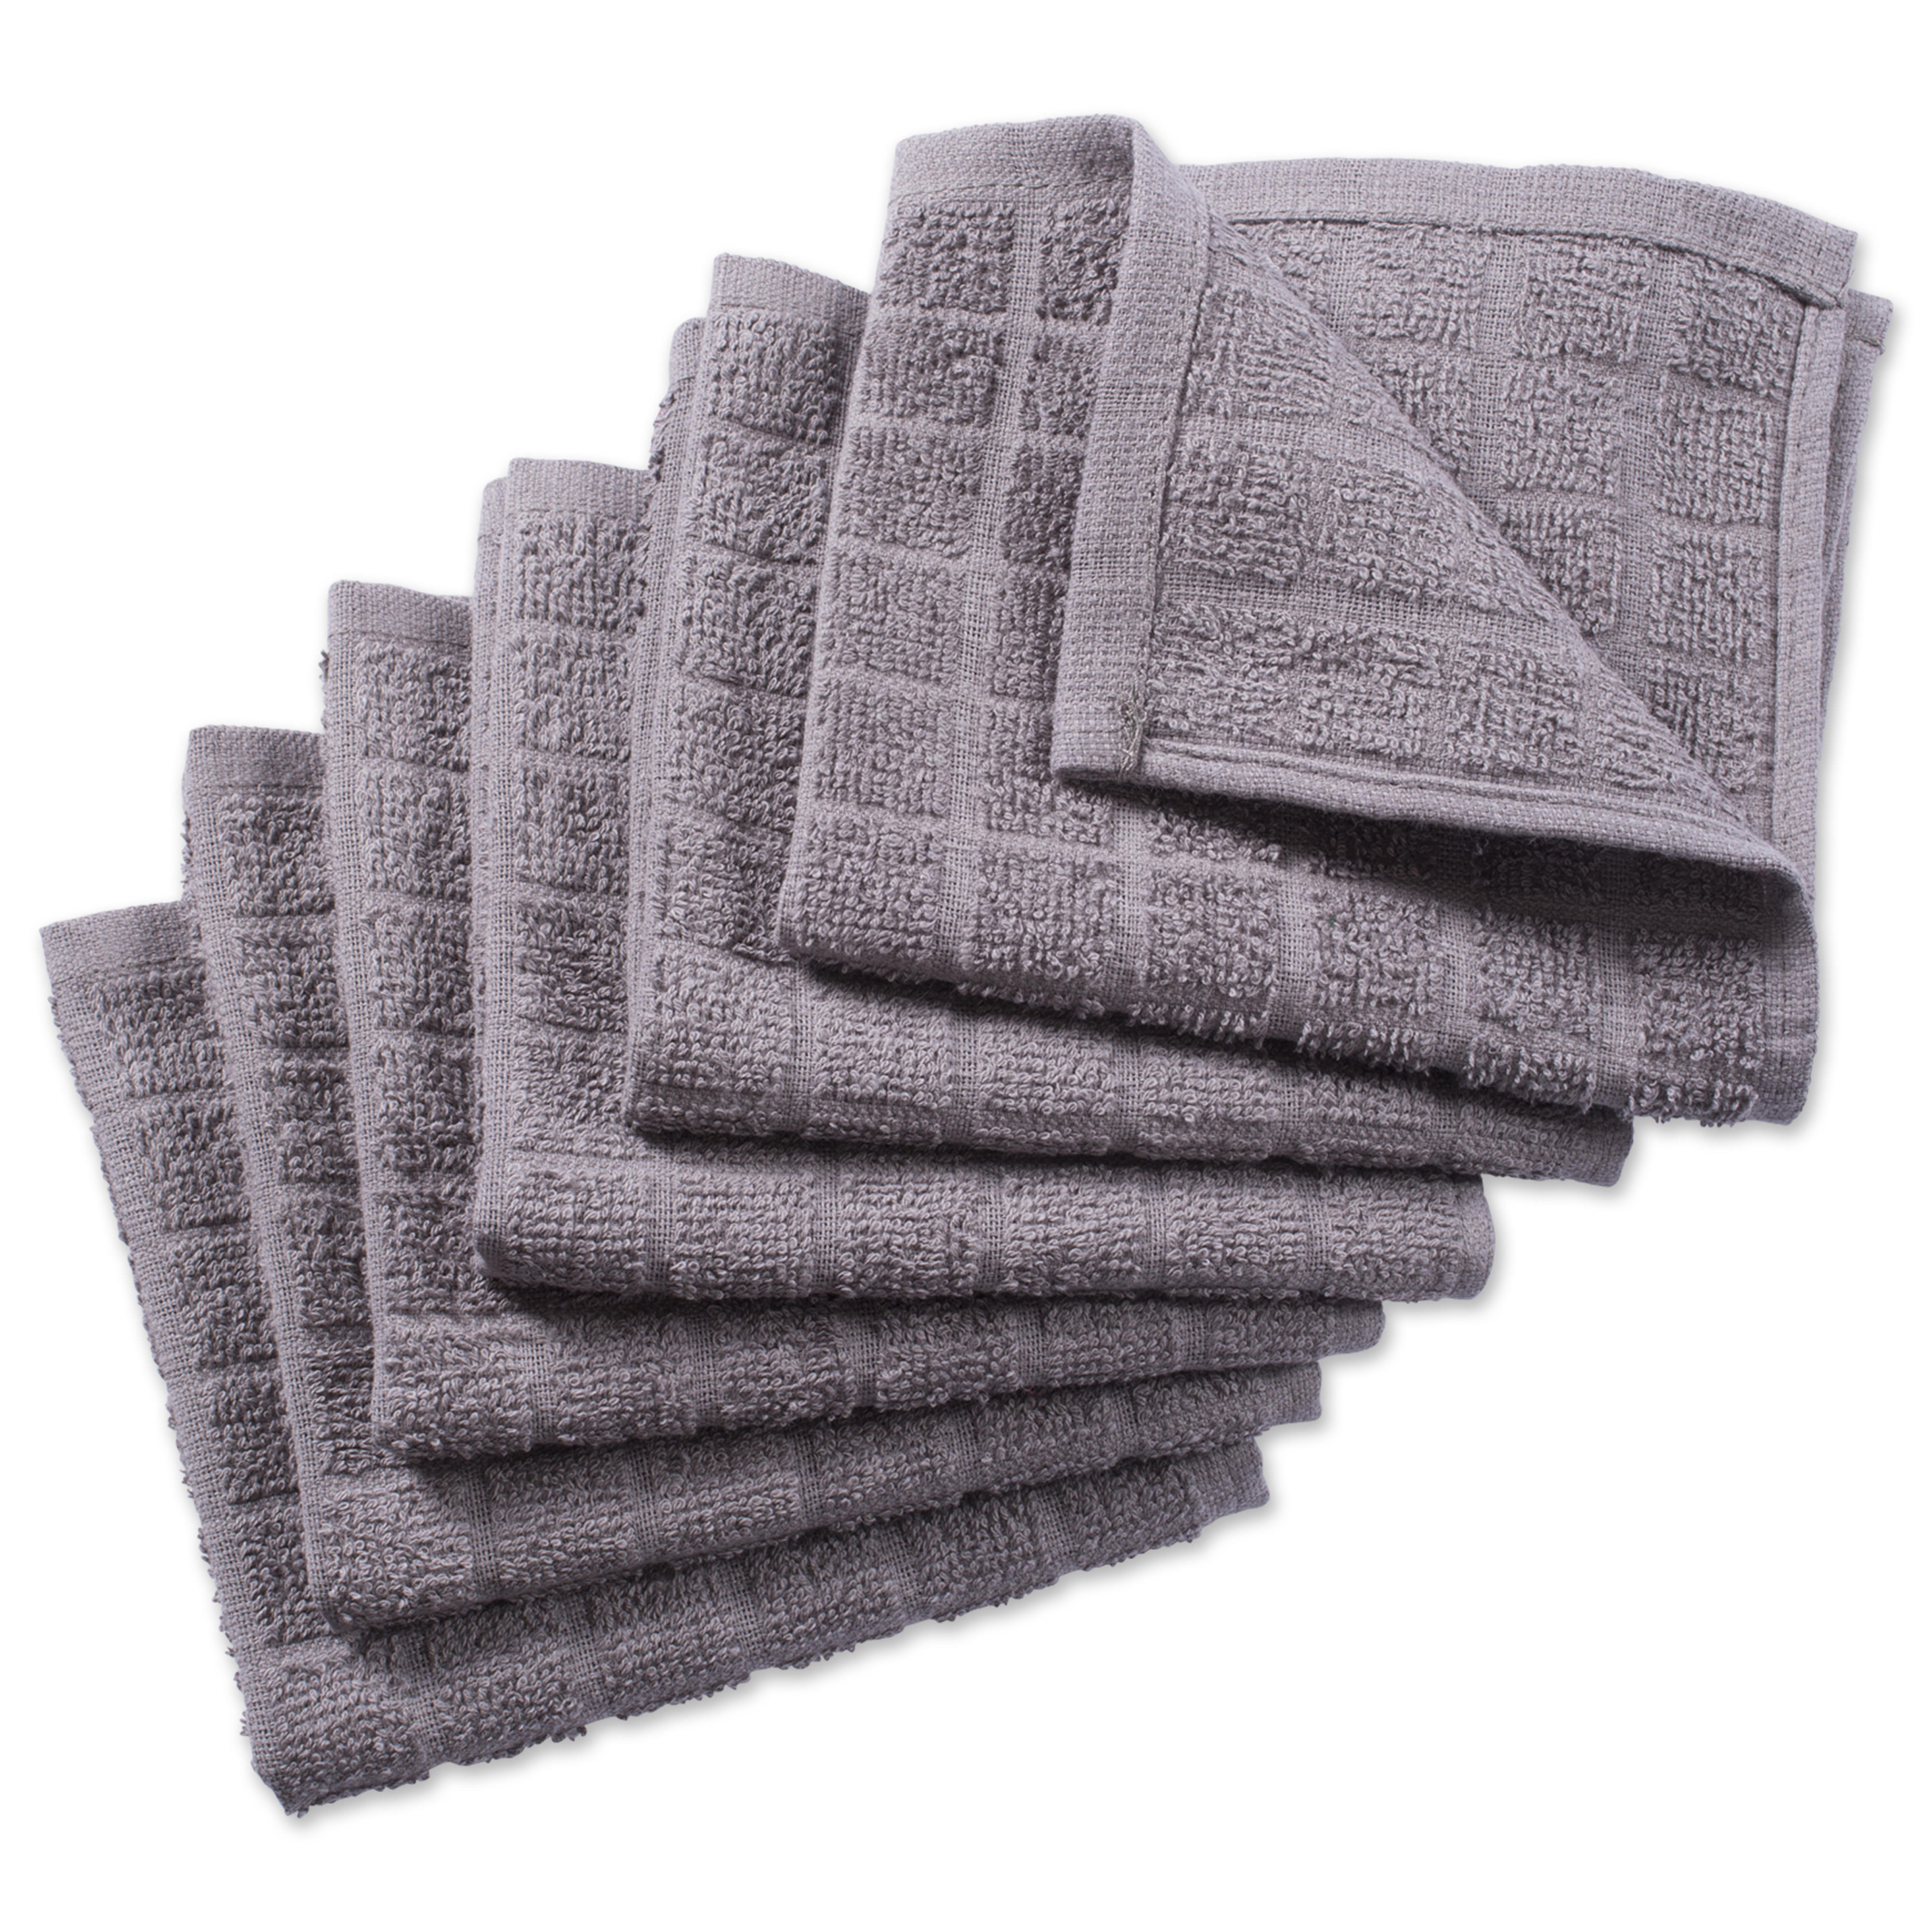 "Design Imports Solid Windowpane Terry Dishcloth Set, Set of 6, 12""x12"", 100% Cotton, Multiple Colors"